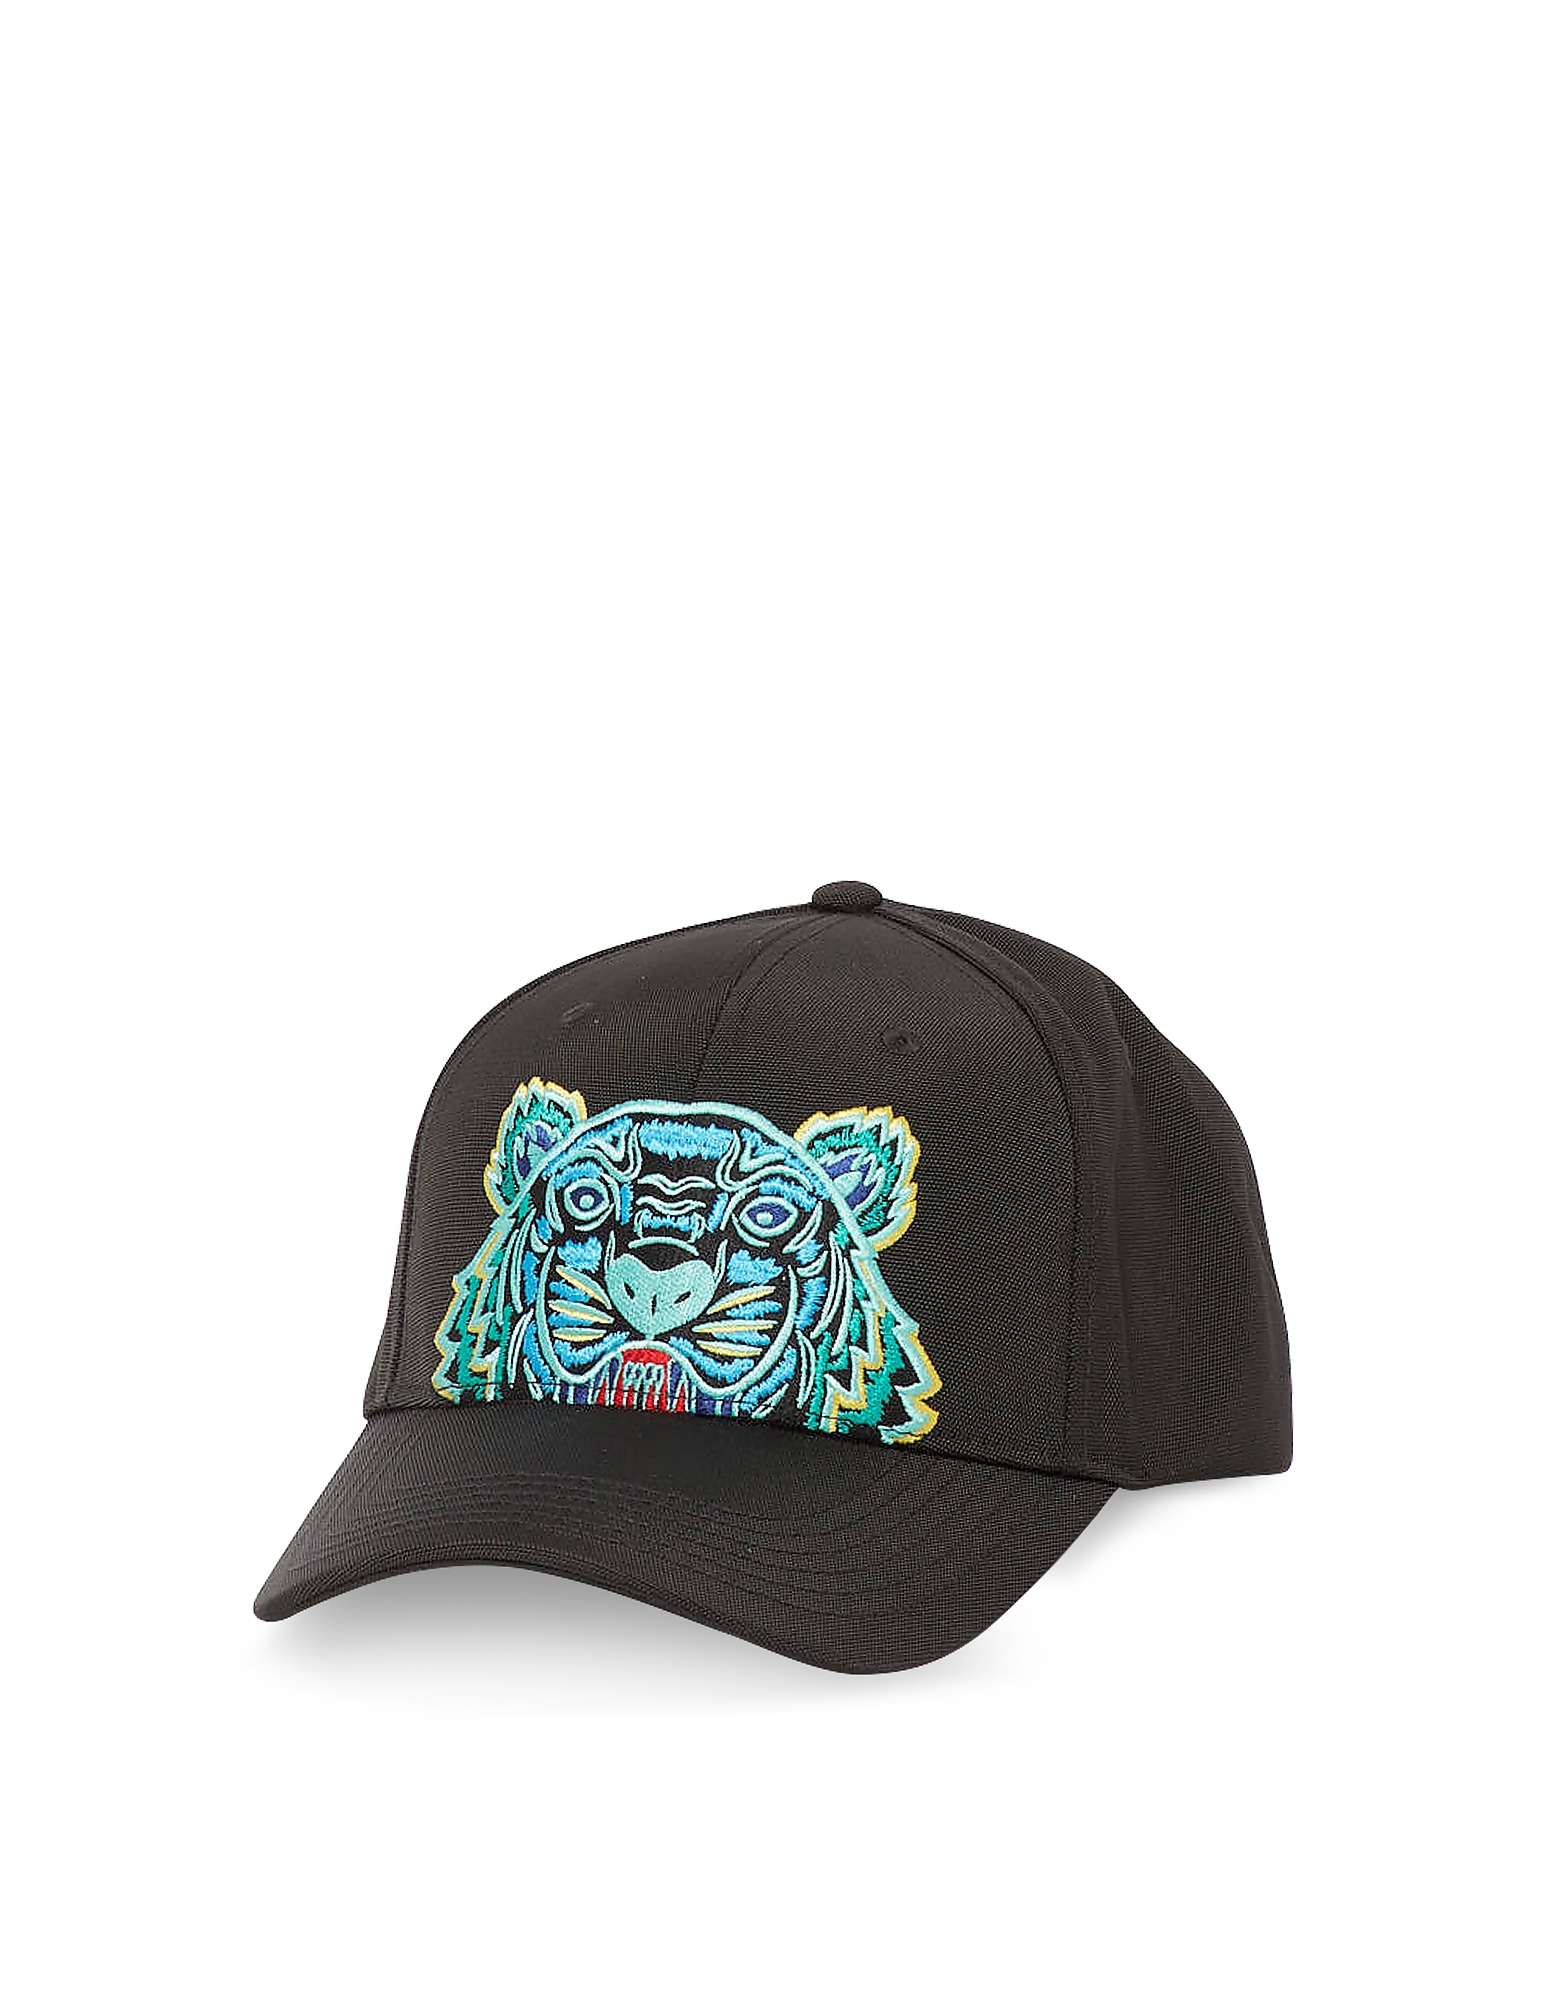 Kenzo Designer Men's Hats, Black Kanvas Tiger Baseball Cap